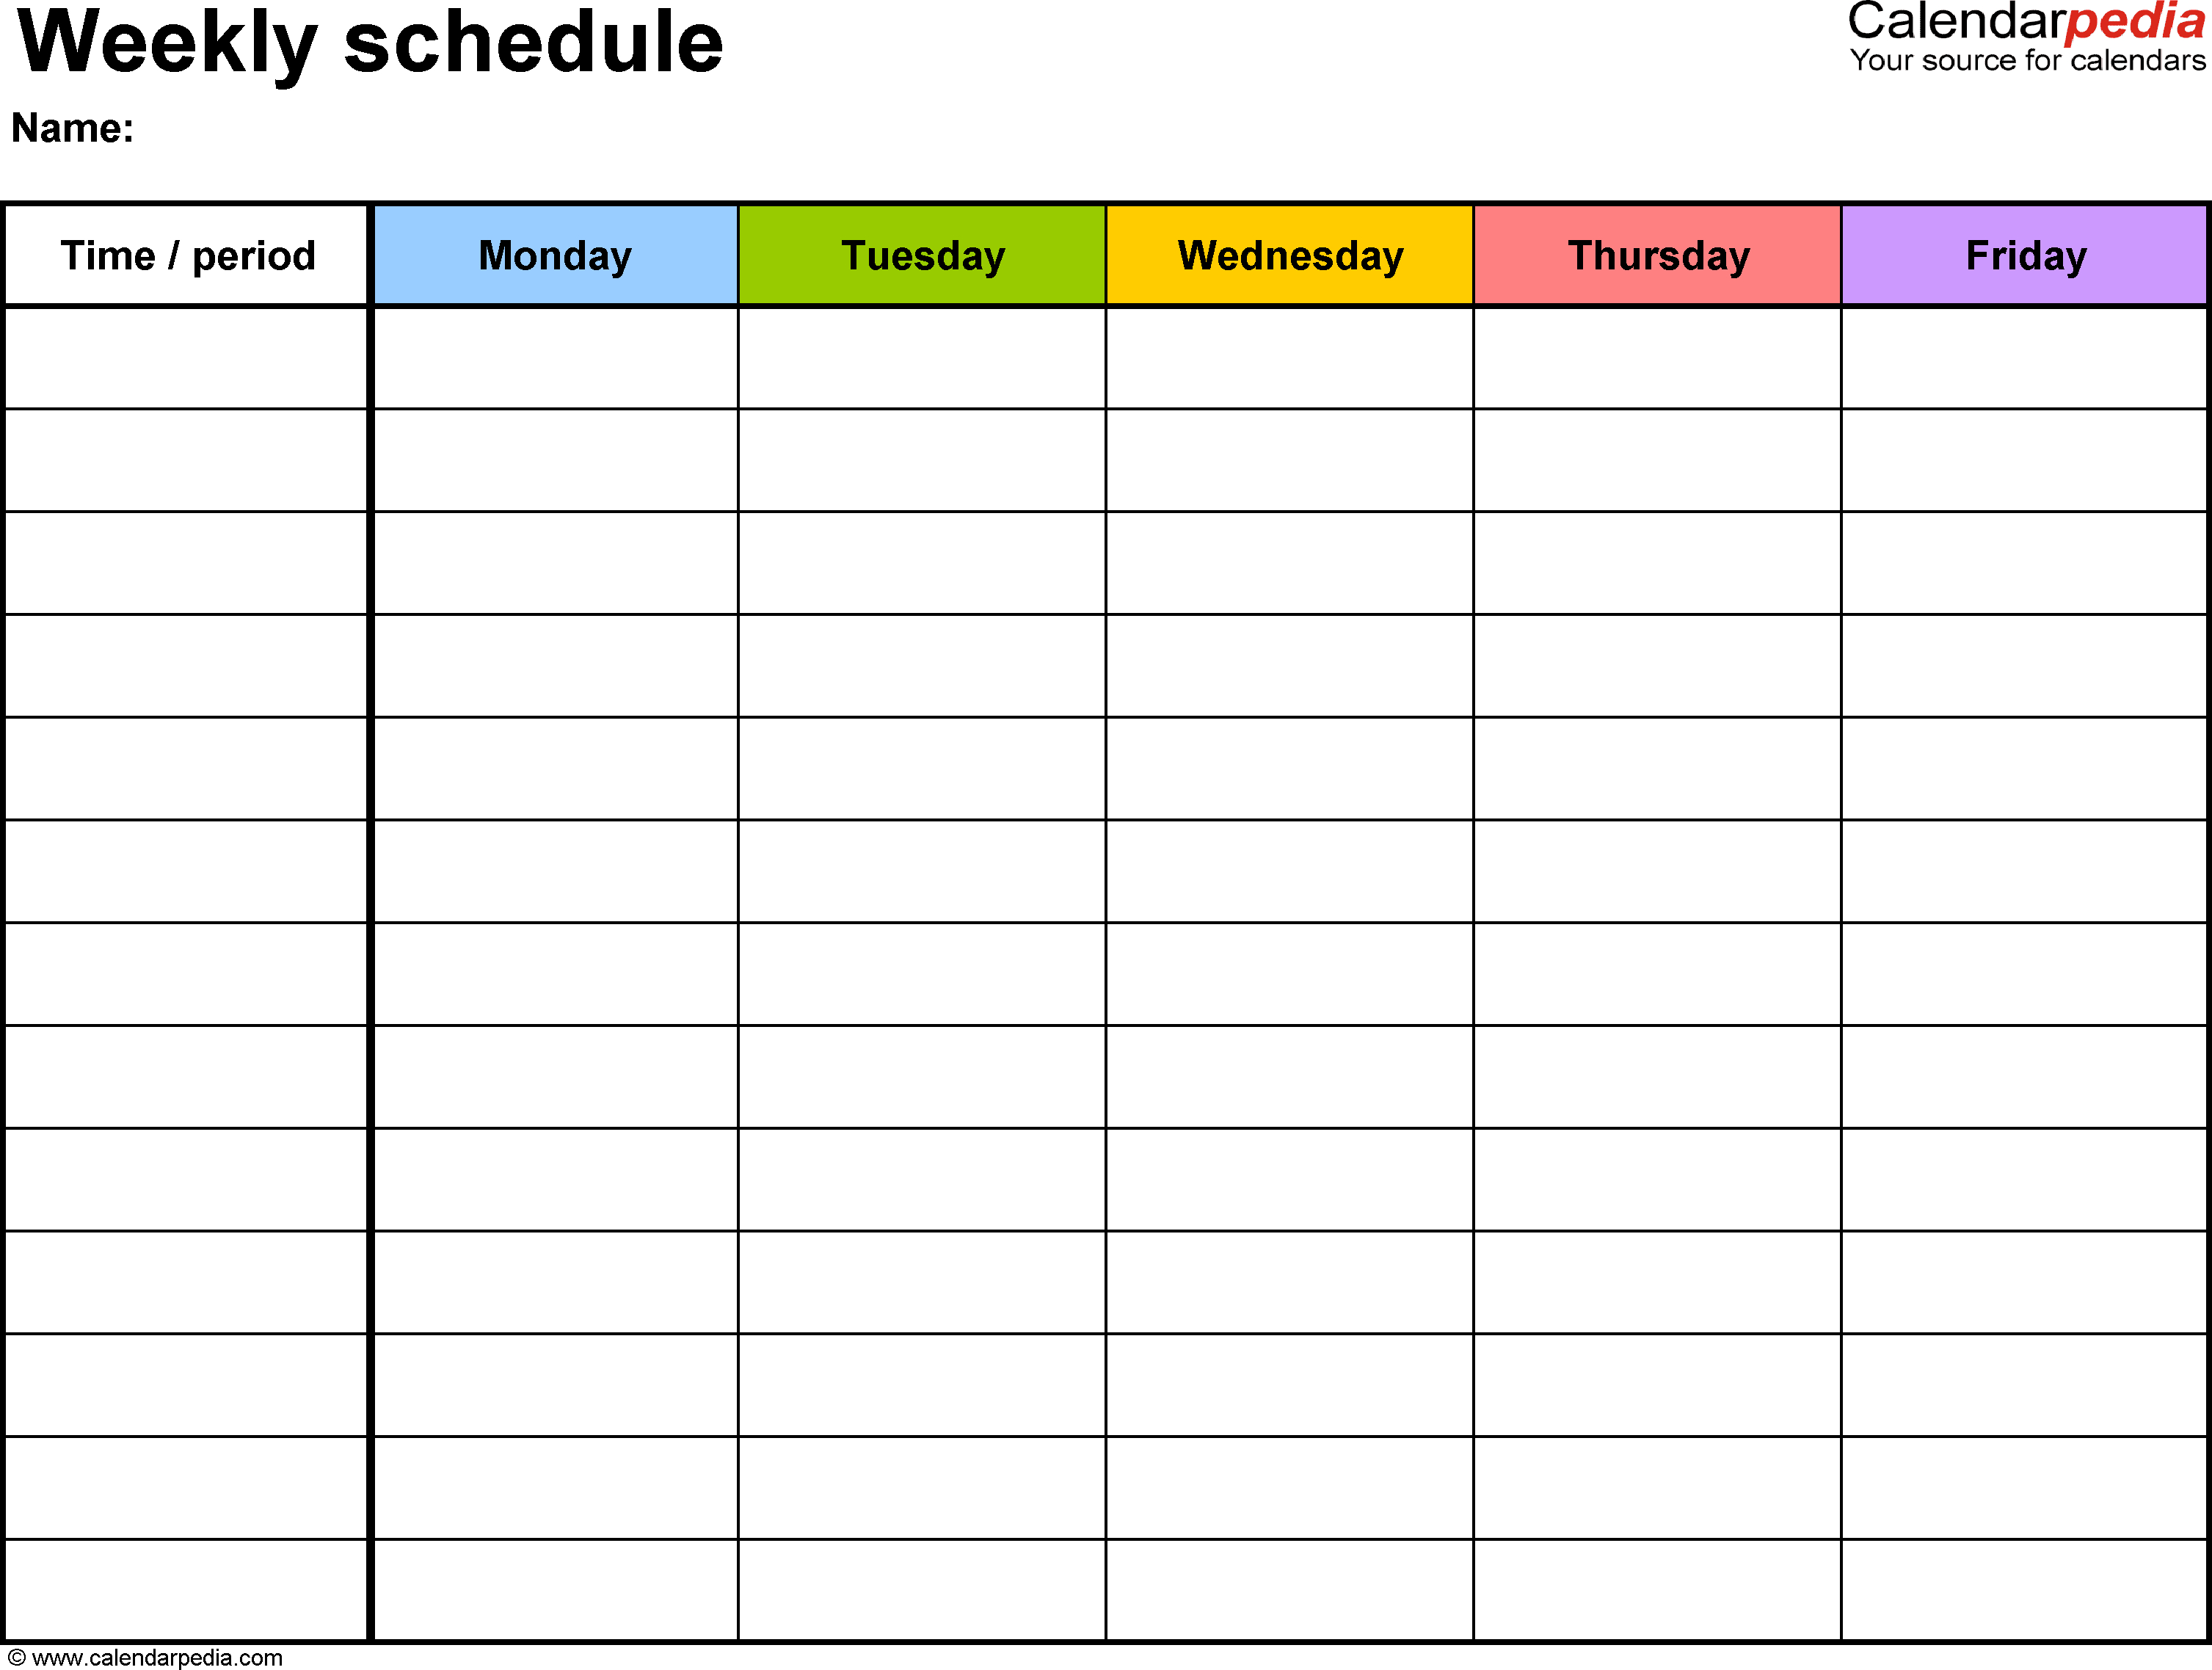 Free Weekly Schedule Templates For Excel   18 Templates Throughout Monthly Work Schedule Template Excel